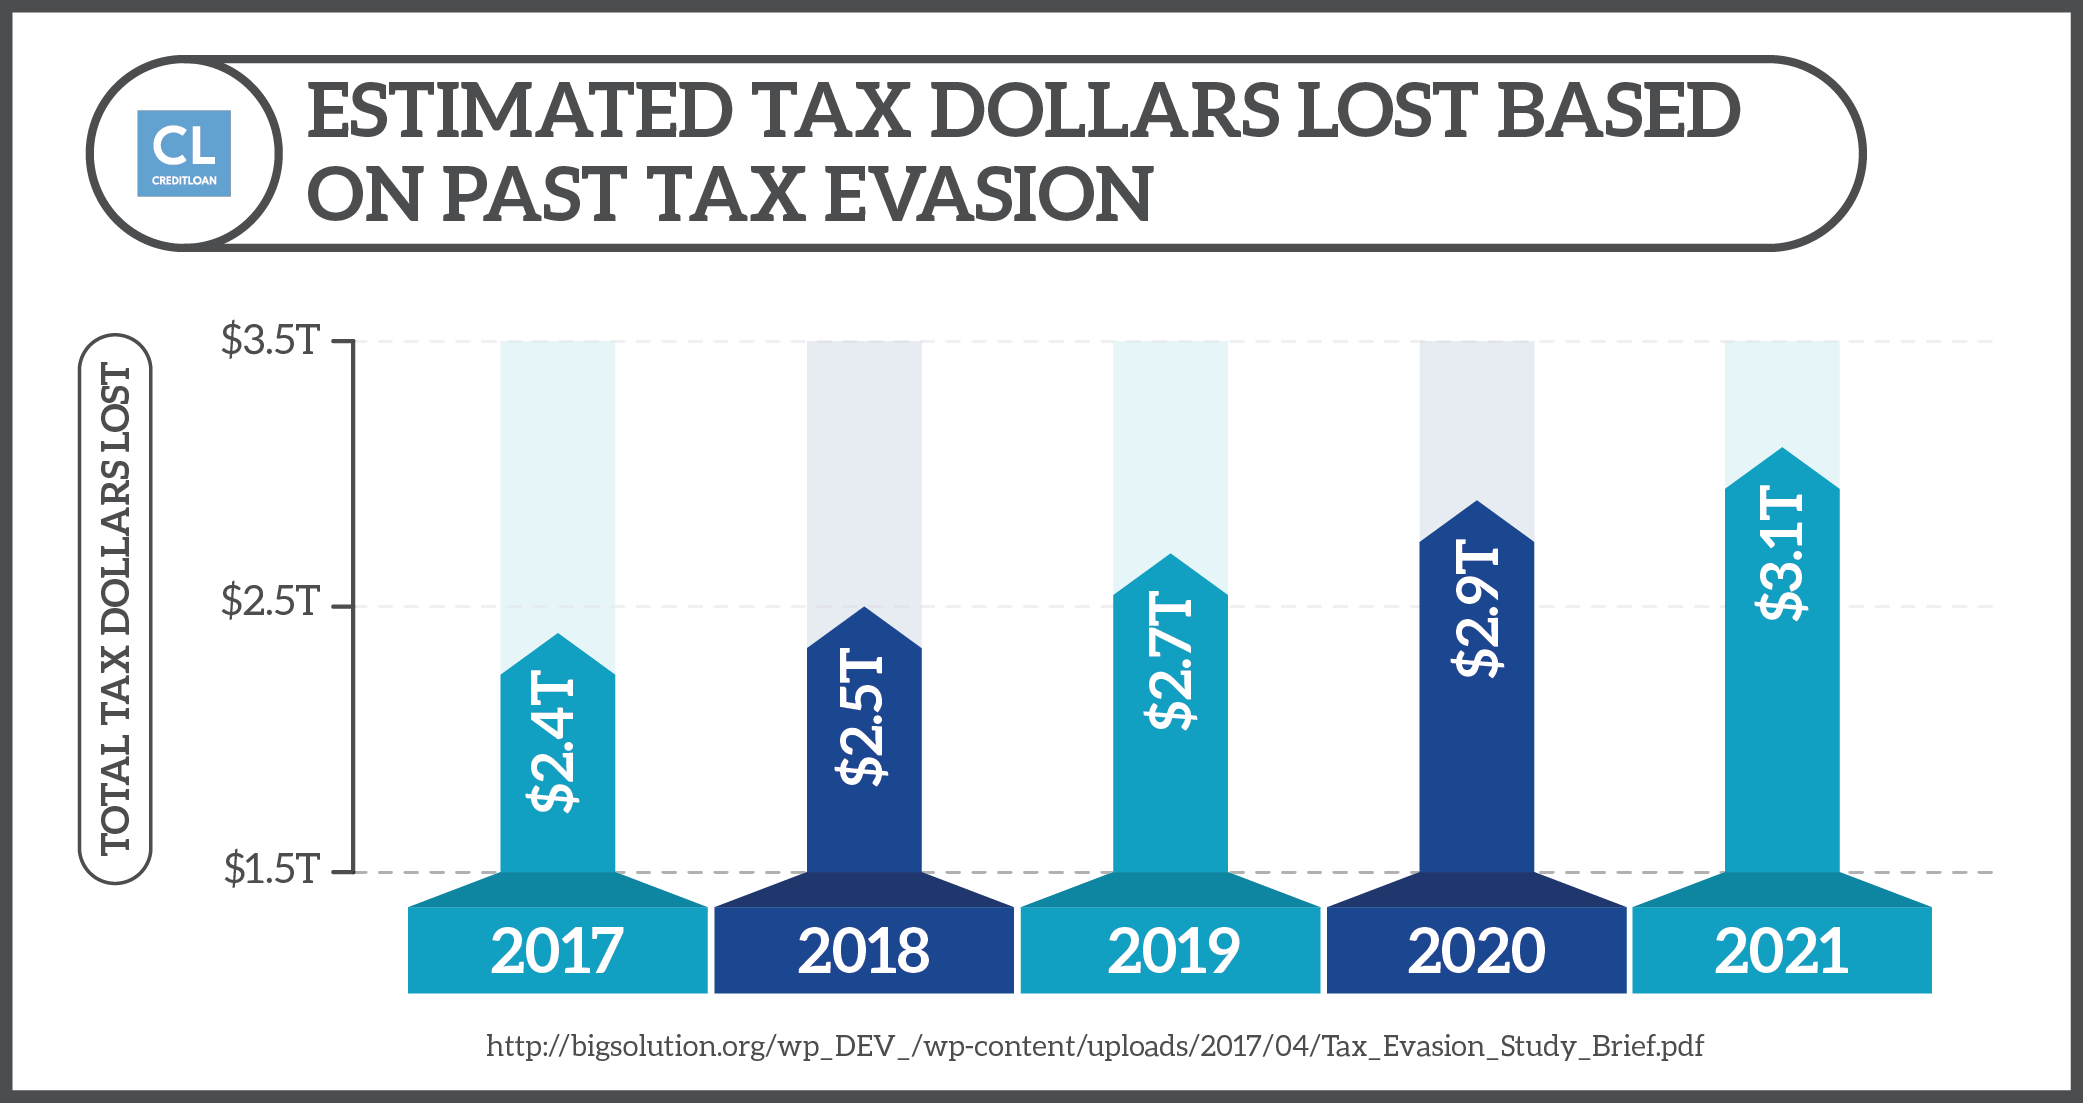 Estimated Tax Dollars Lost Based on Past Tax Evasion 2017-2021